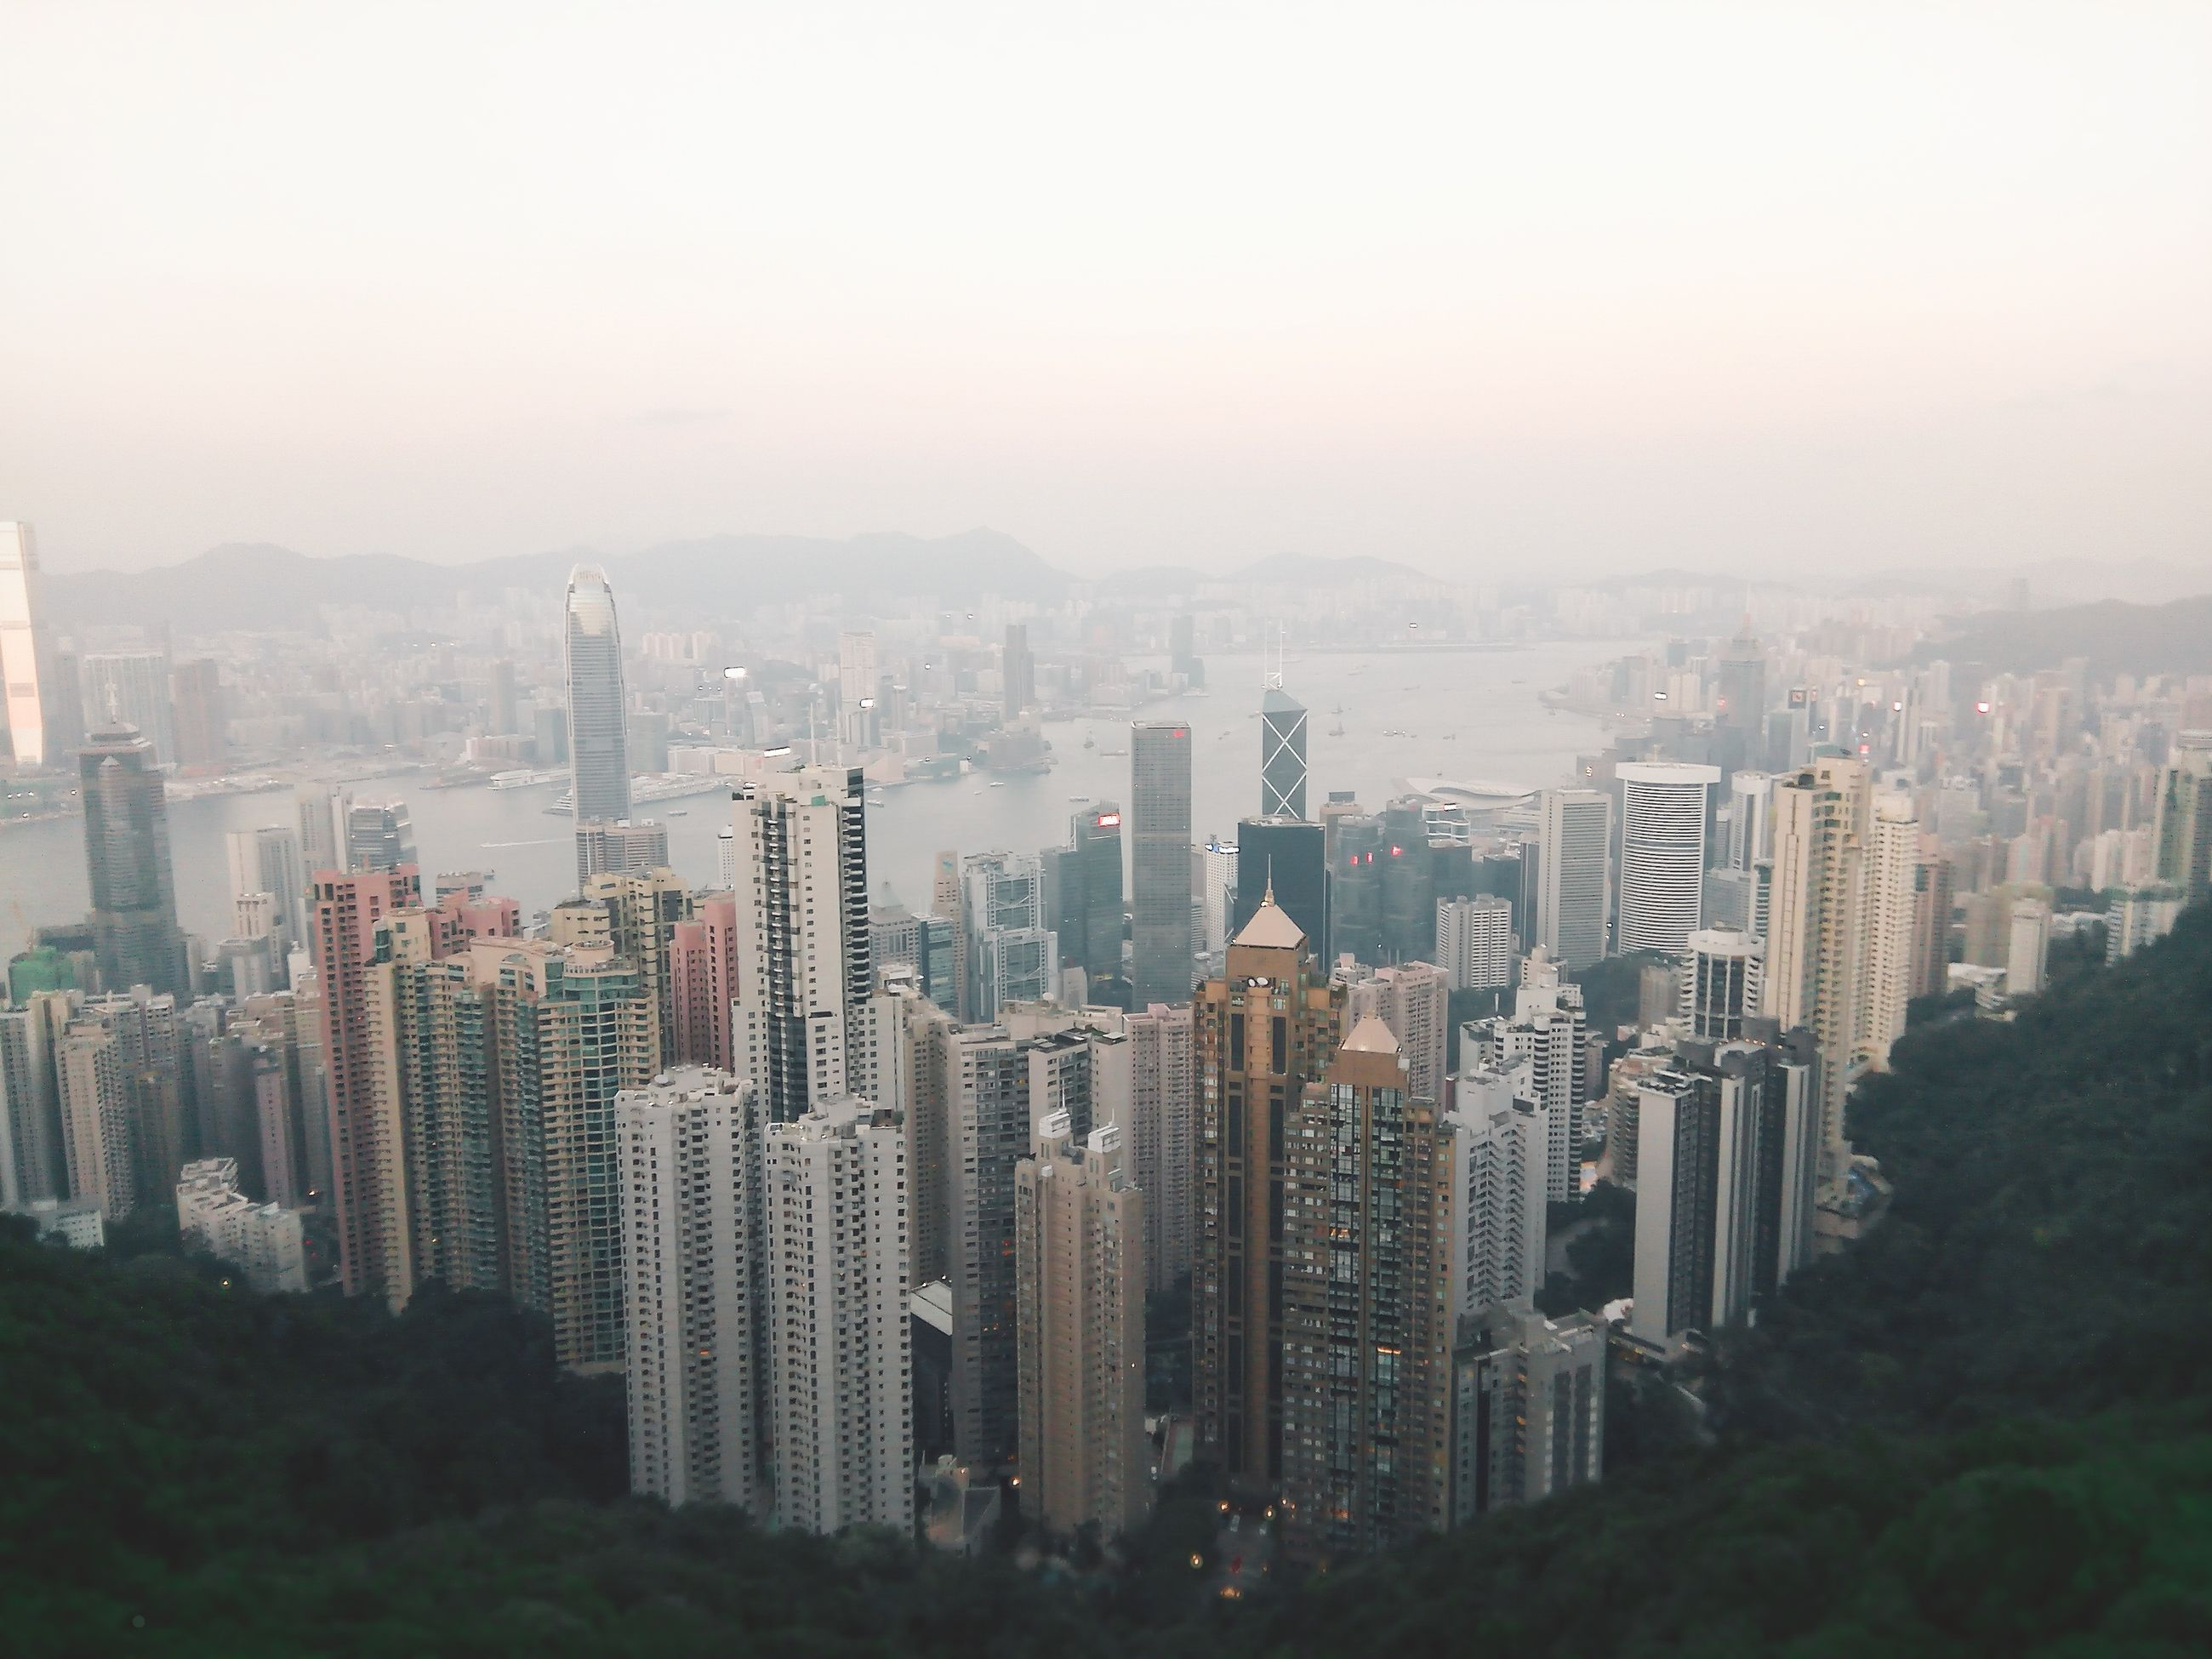 cityscape, skyscraper, architecture, city, building exterior, modern, crowded, built structure, urban skyline, outdoors, growth, travel destinations, day, sky, nature, office park